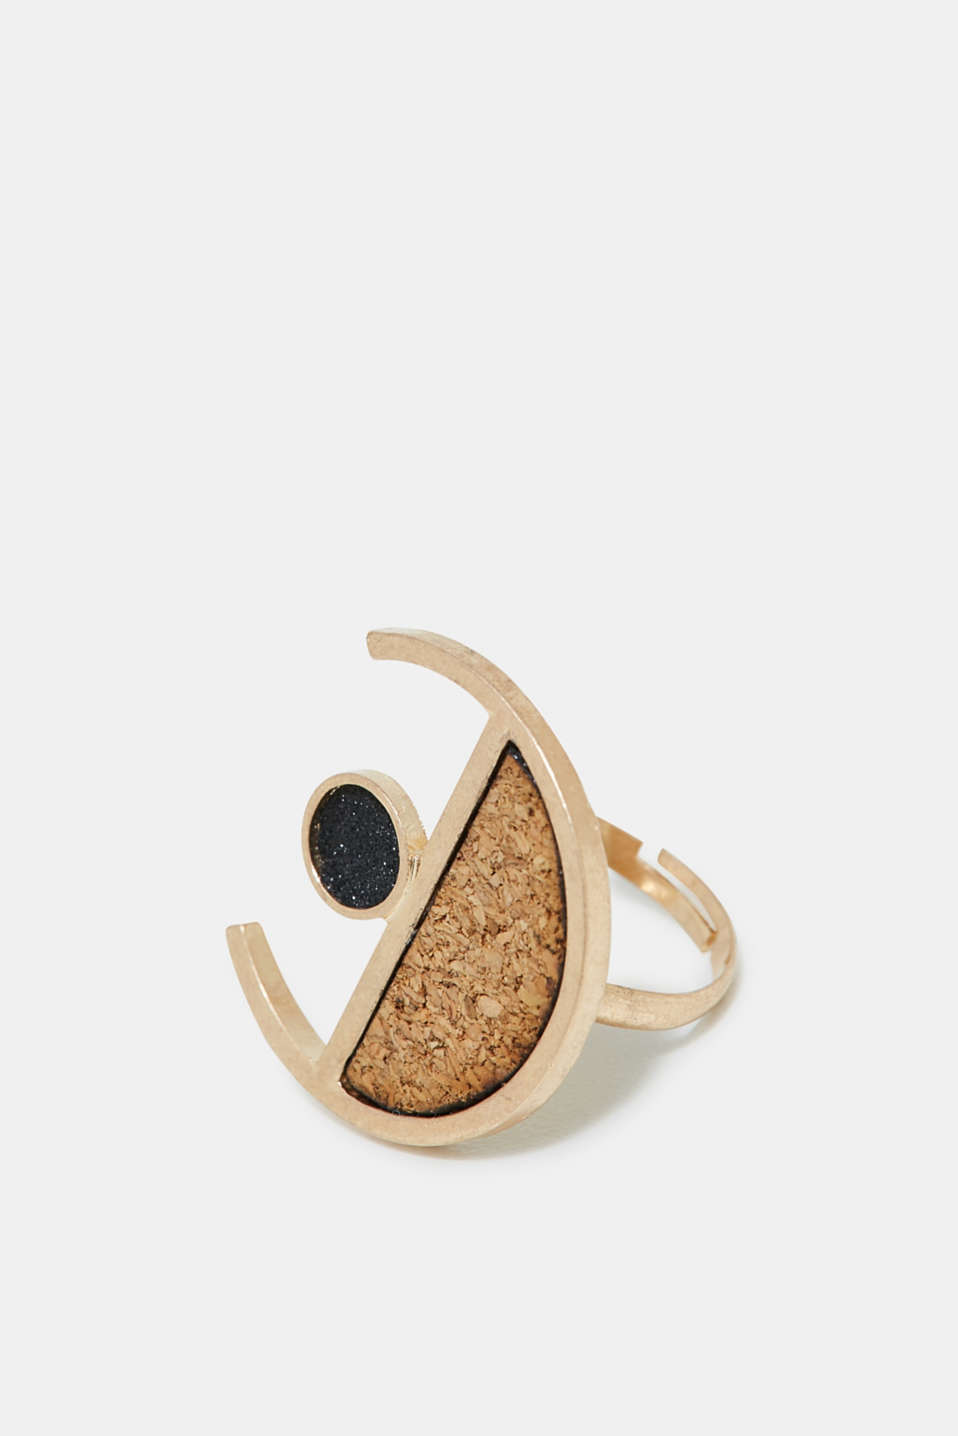 Esprit - Statement ring with cork and glitter